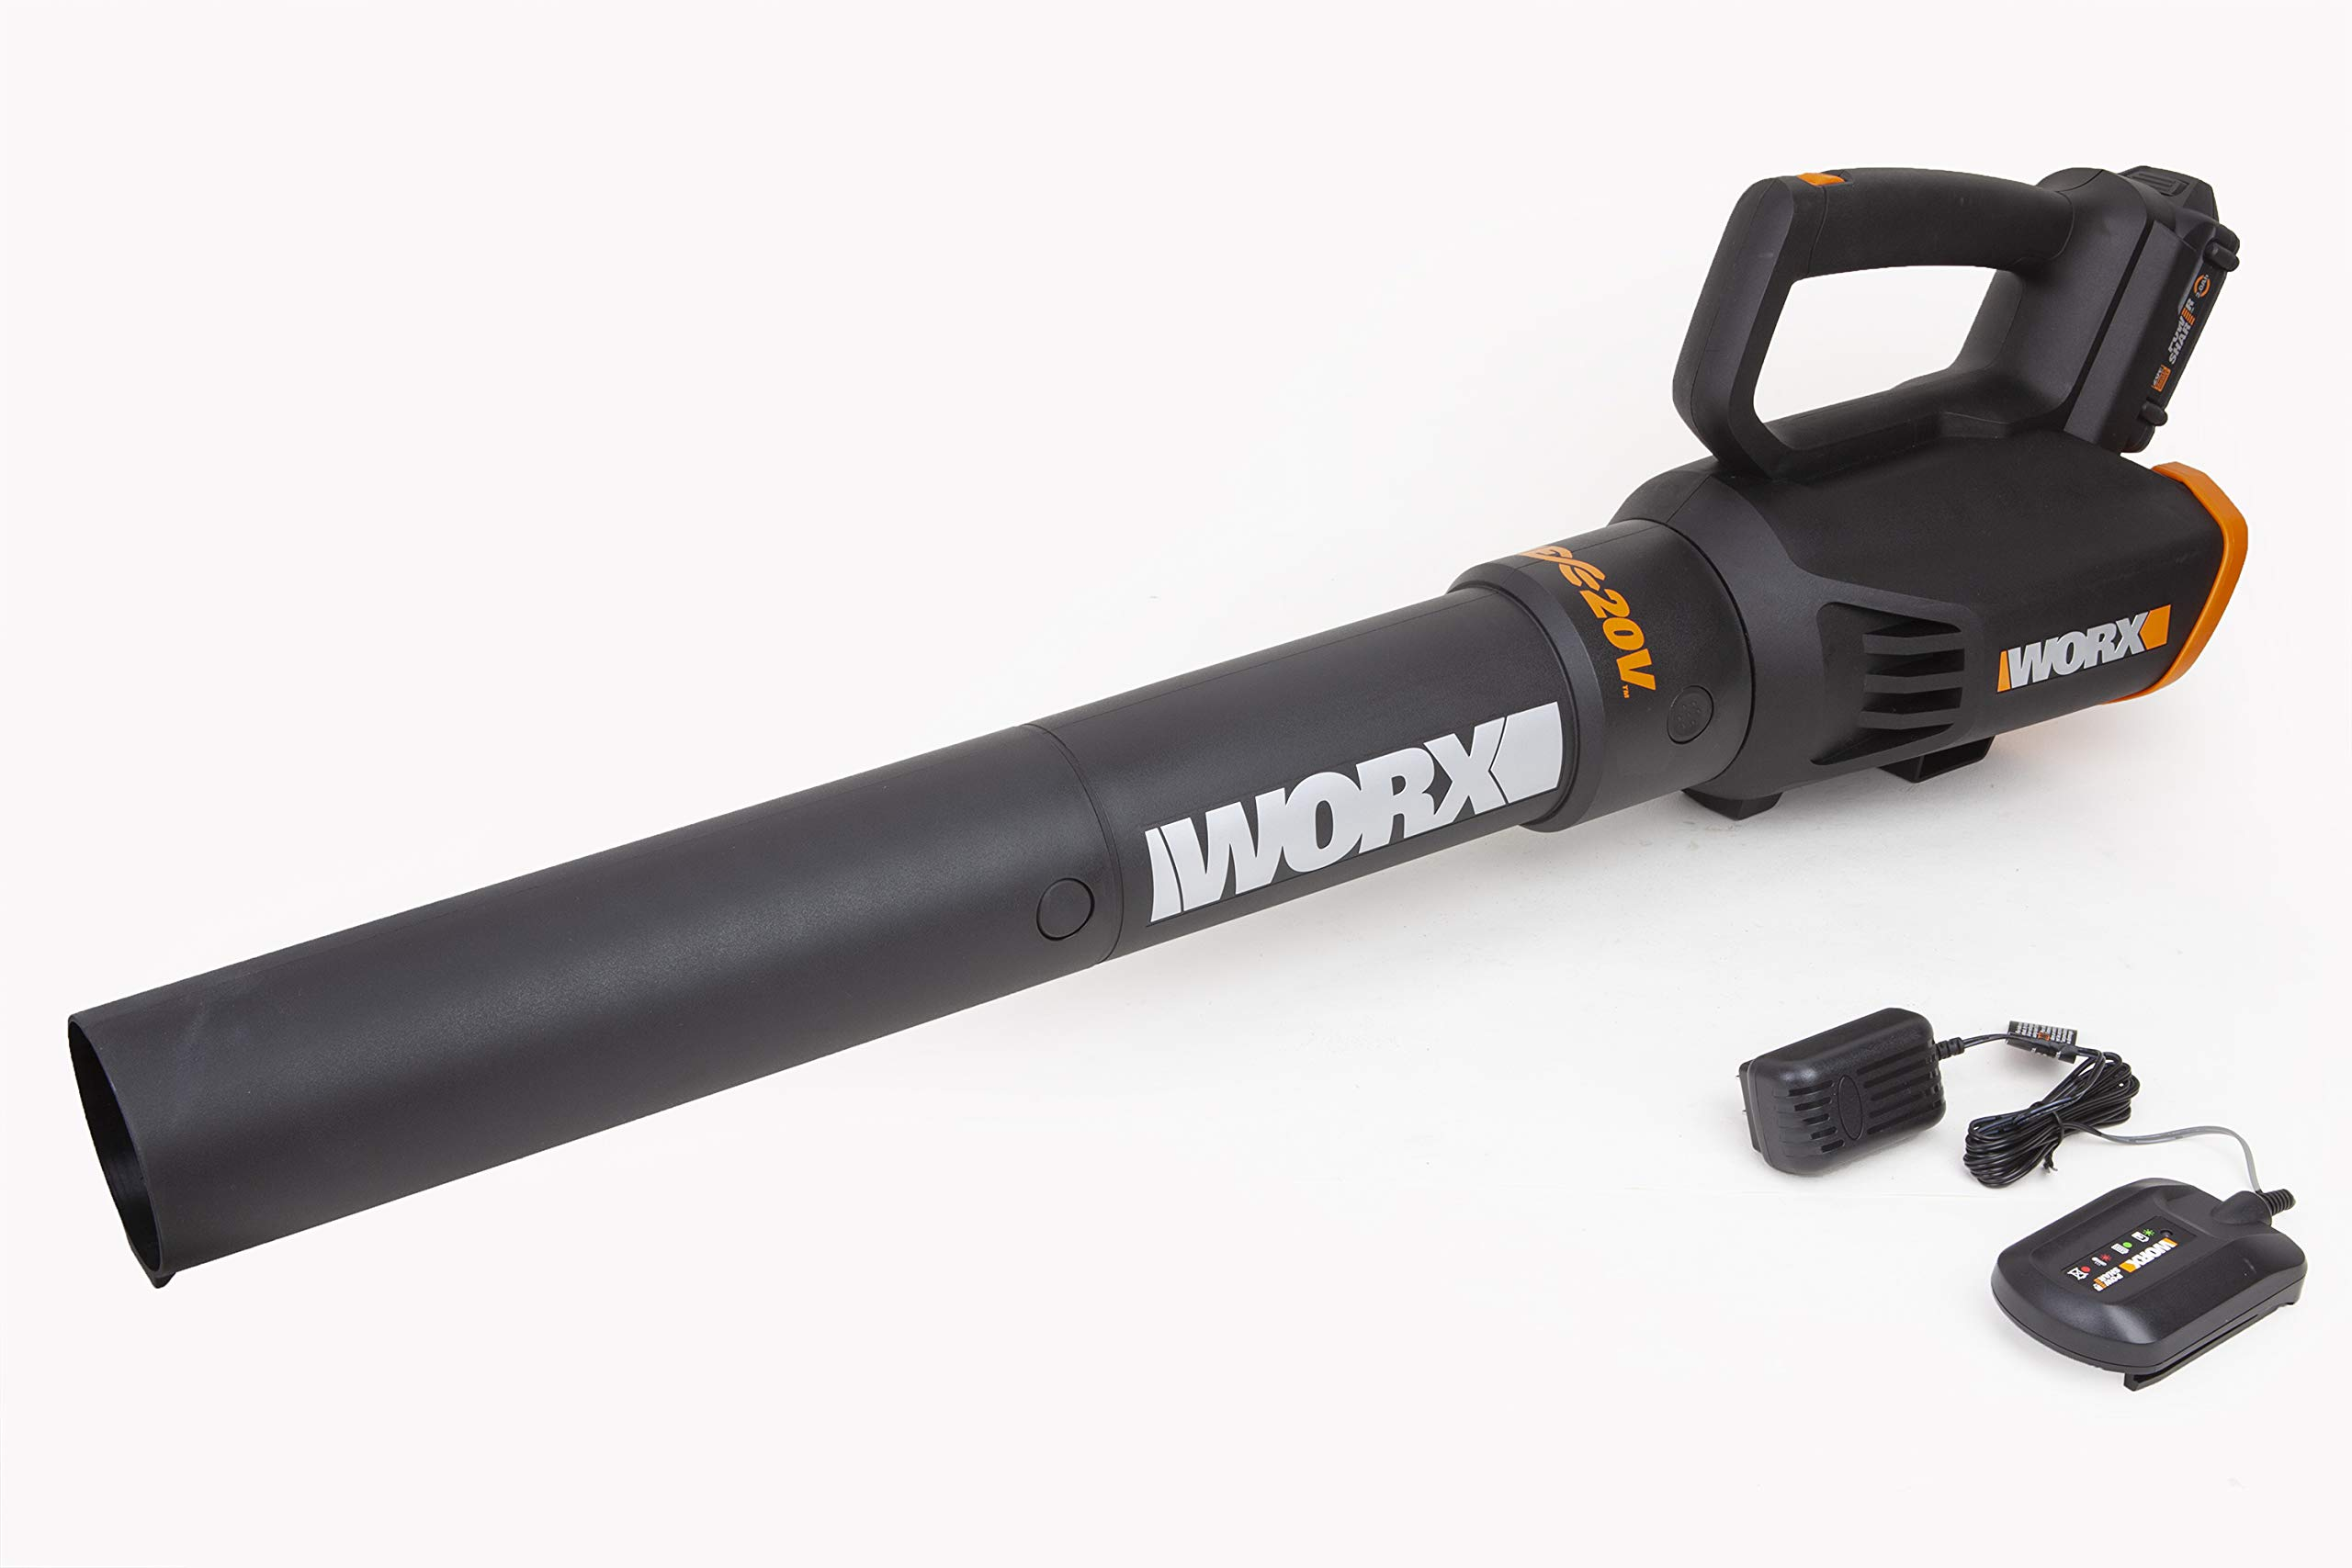 WORX WG547 20V (2.0Ah) Power Share Cordless Turbine Blower, 2-speed, Battery and Charger Included